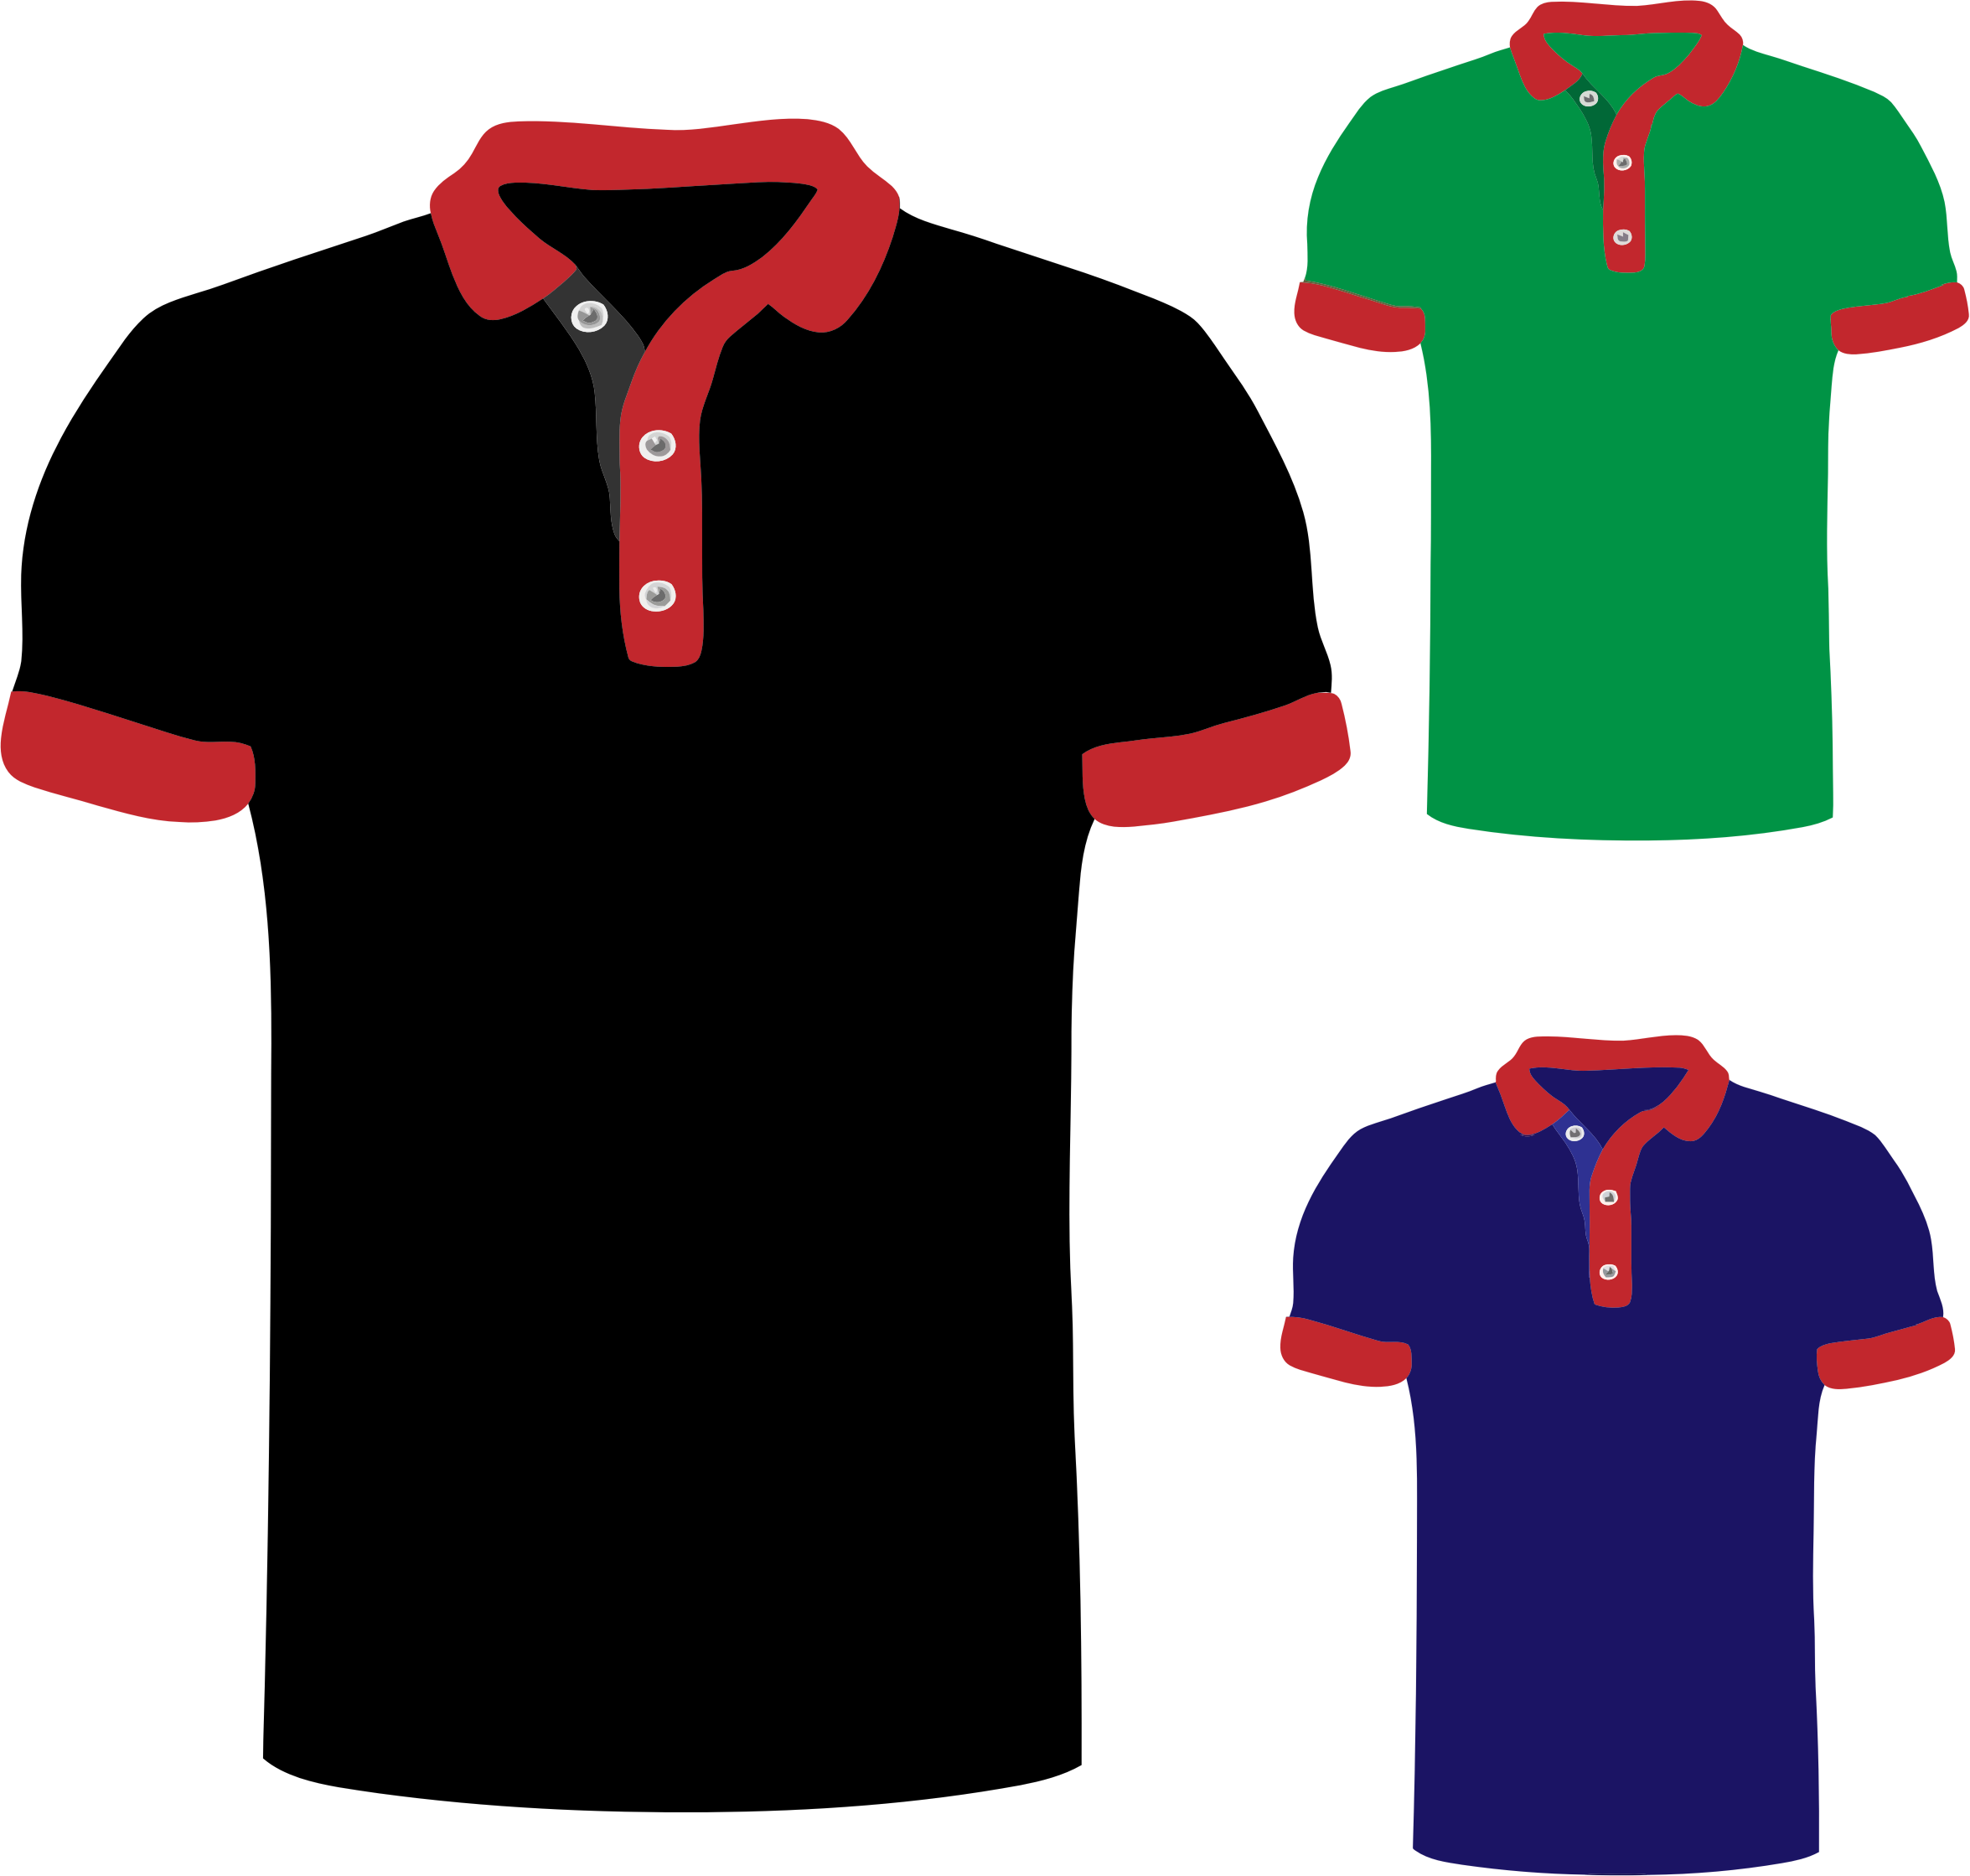 Polo shirts big image. People clipart clothes